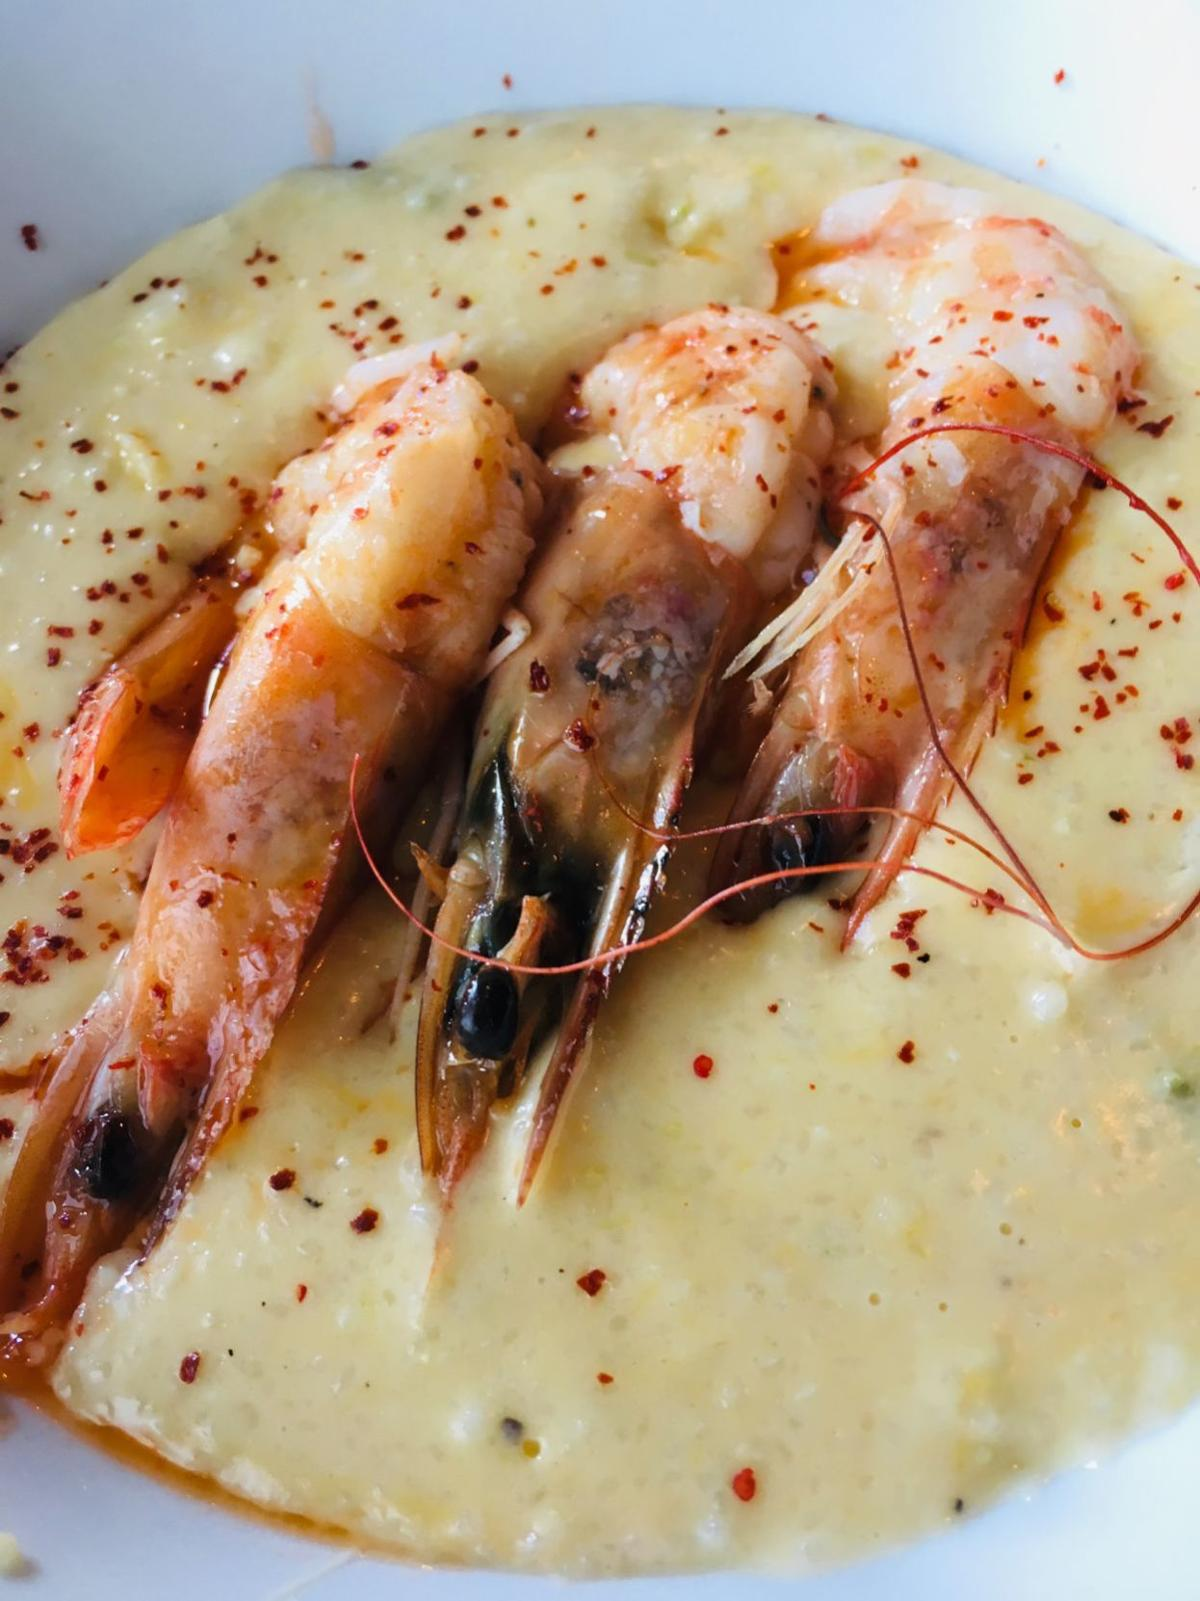 20190724-gm-food-prawn and grits.jpg